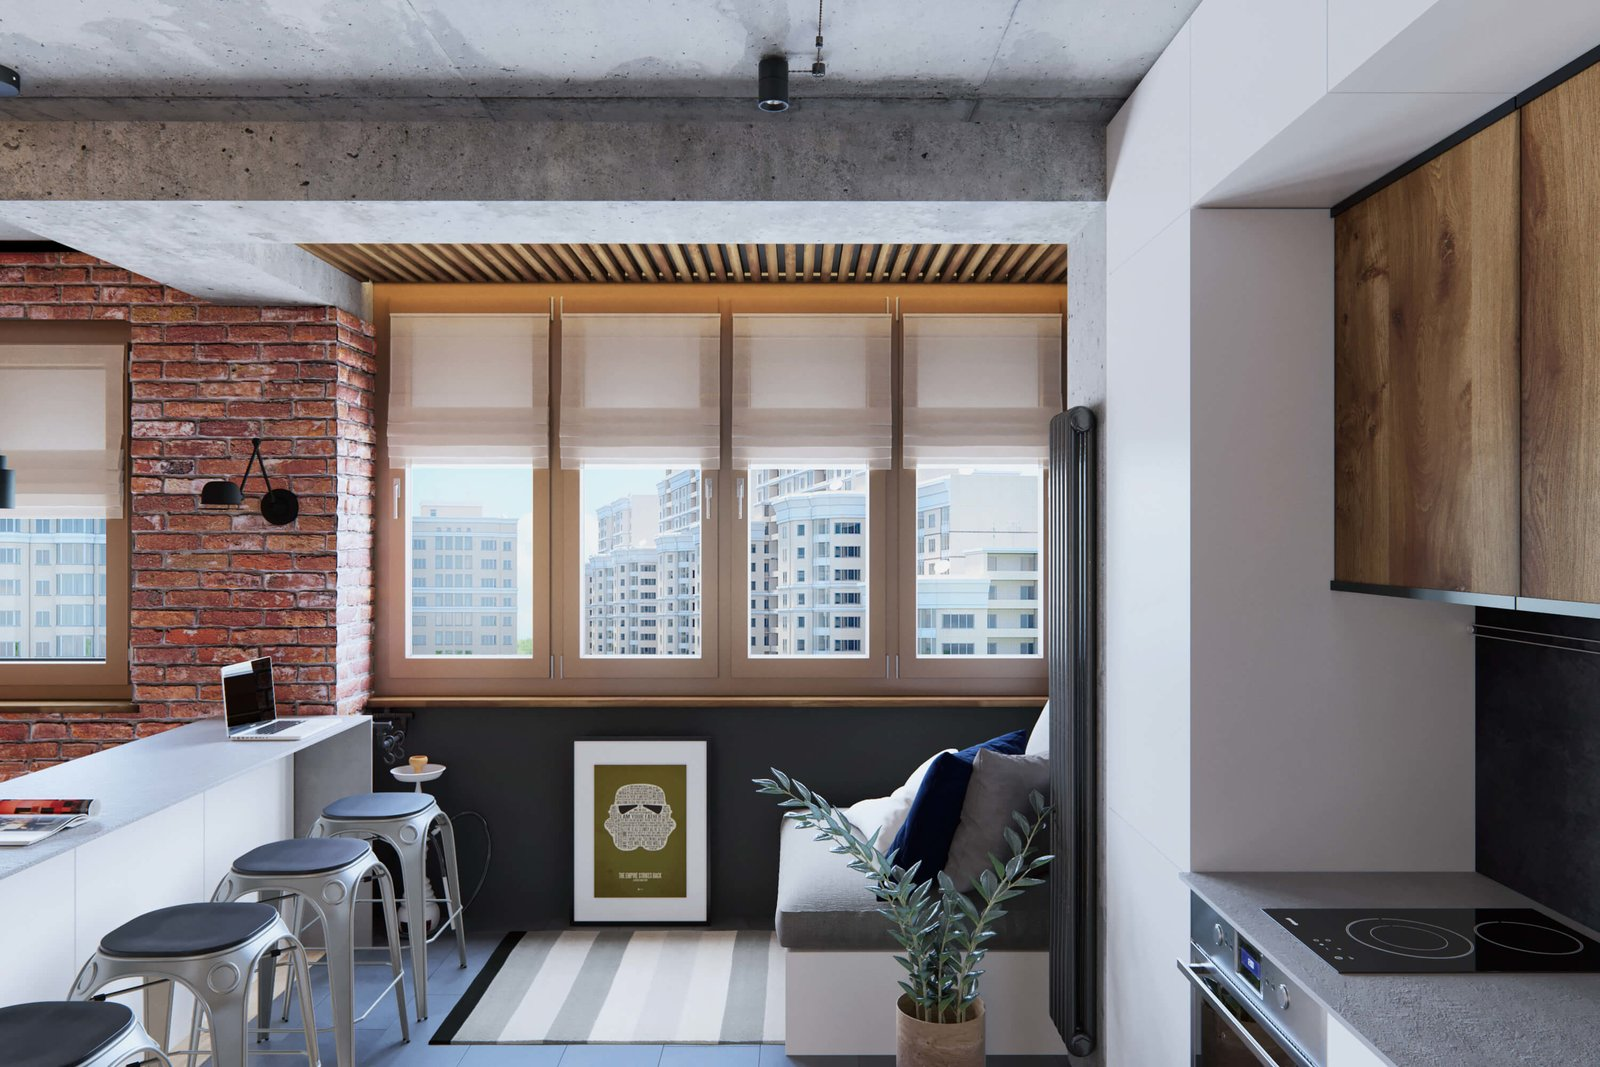 Kitchen, Wood Counter, and Metal Counter  A Contemporary Apartment for a Single Man in Moscow